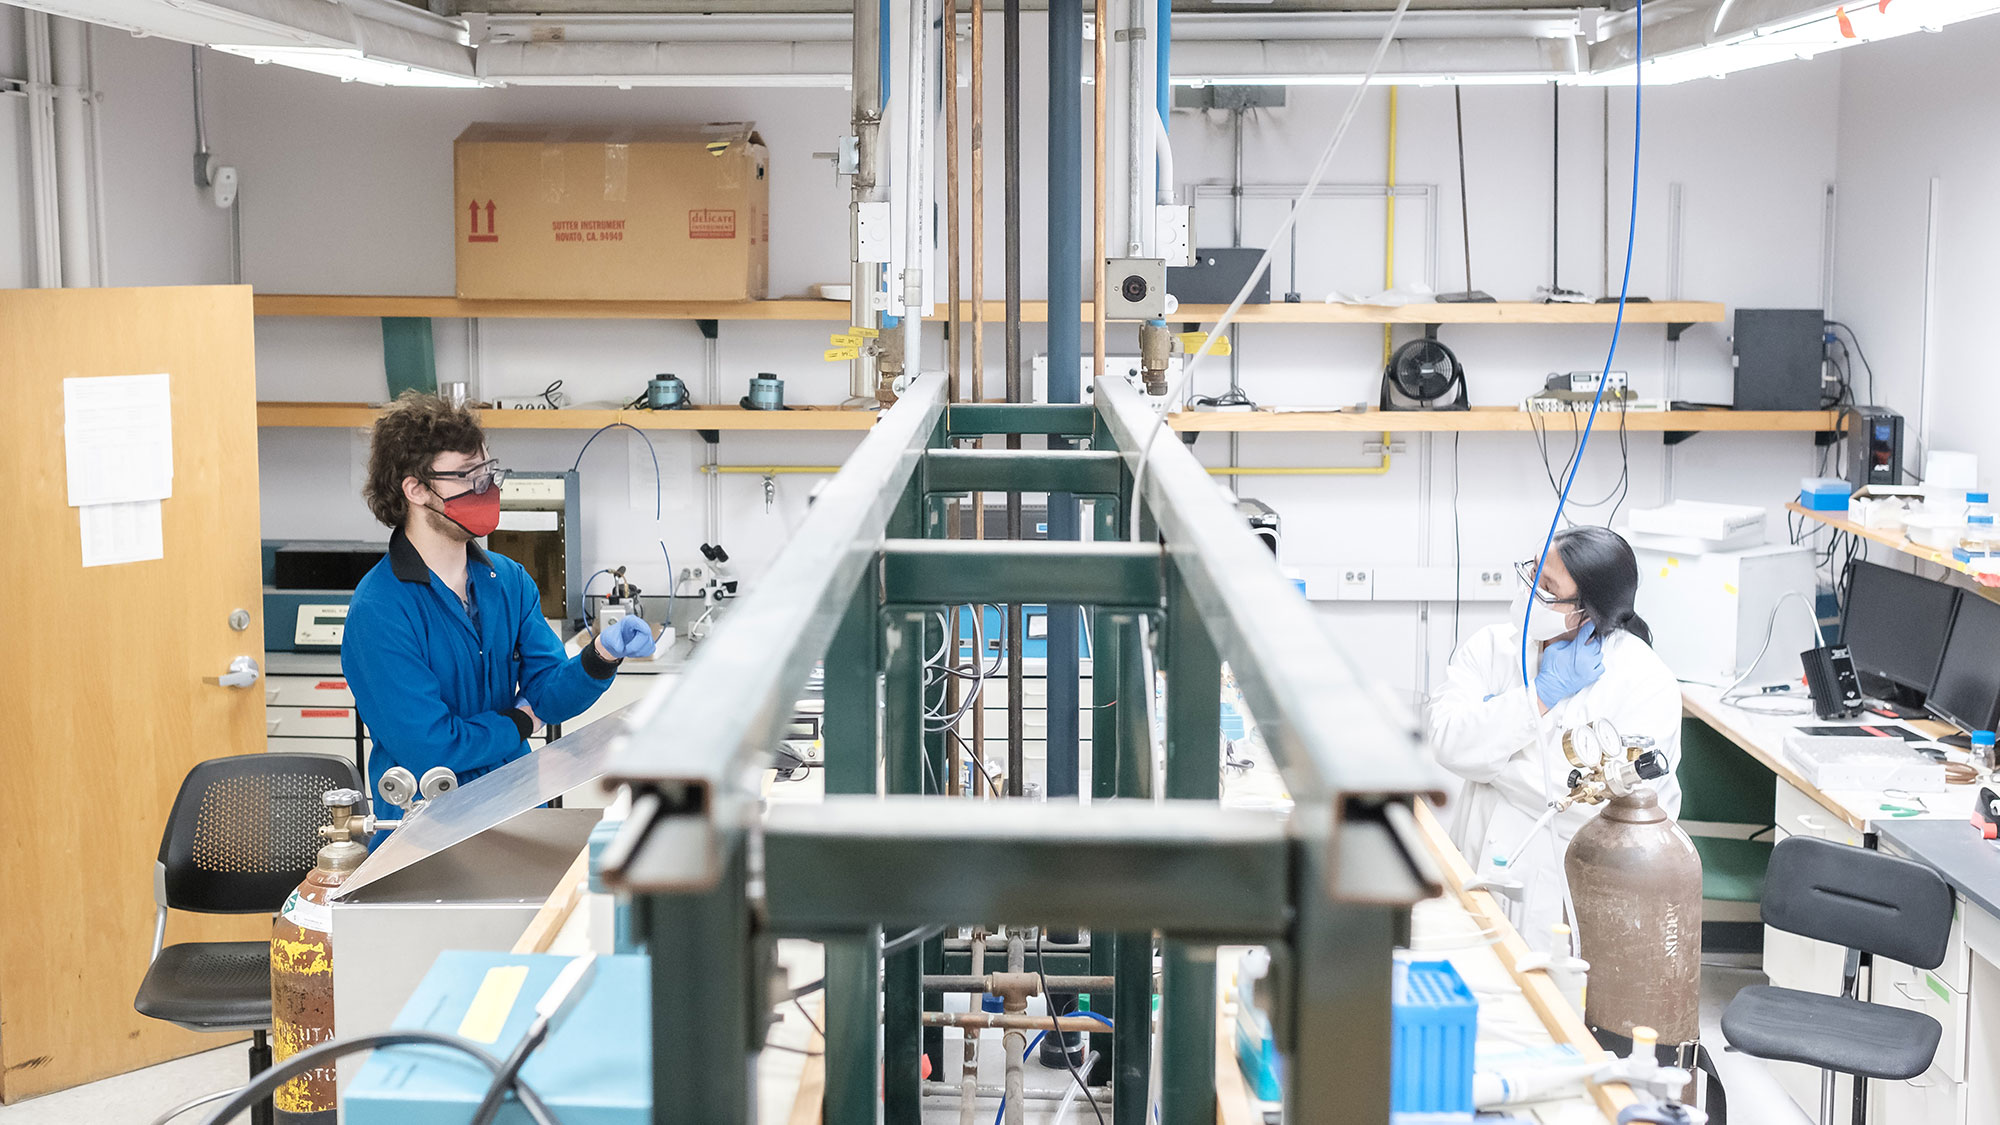 A laboratory, the camera looking down from above. A long beam bisects the center of the photograph, with a lab bench on either side. On the right is Angus Wu, an asian student in a lab coat, face covering, and gloves. On the left is Andrew Pendergrast, a white man wearing a blue lab coat, face covering and gloves.